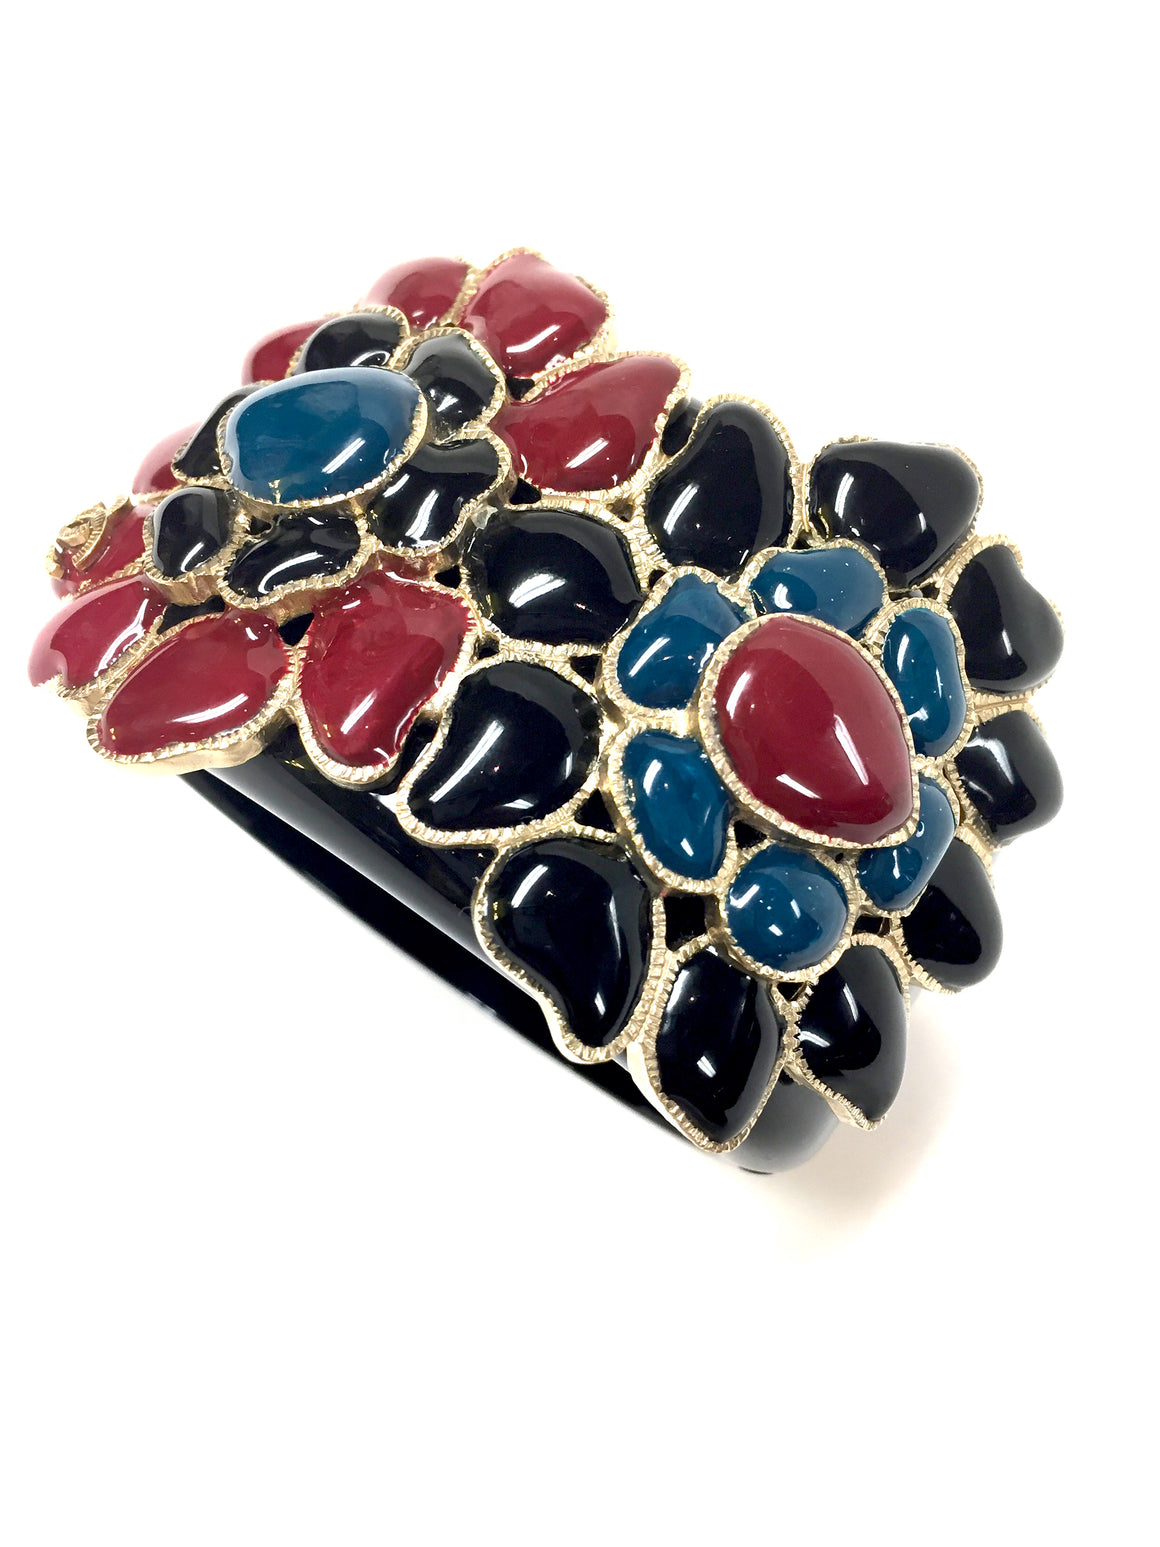 bisbiz.com CHANEL Black Lucite Black Teal & Red Enameled Flowers Cuff Bracelet - Bis Luxury Resale